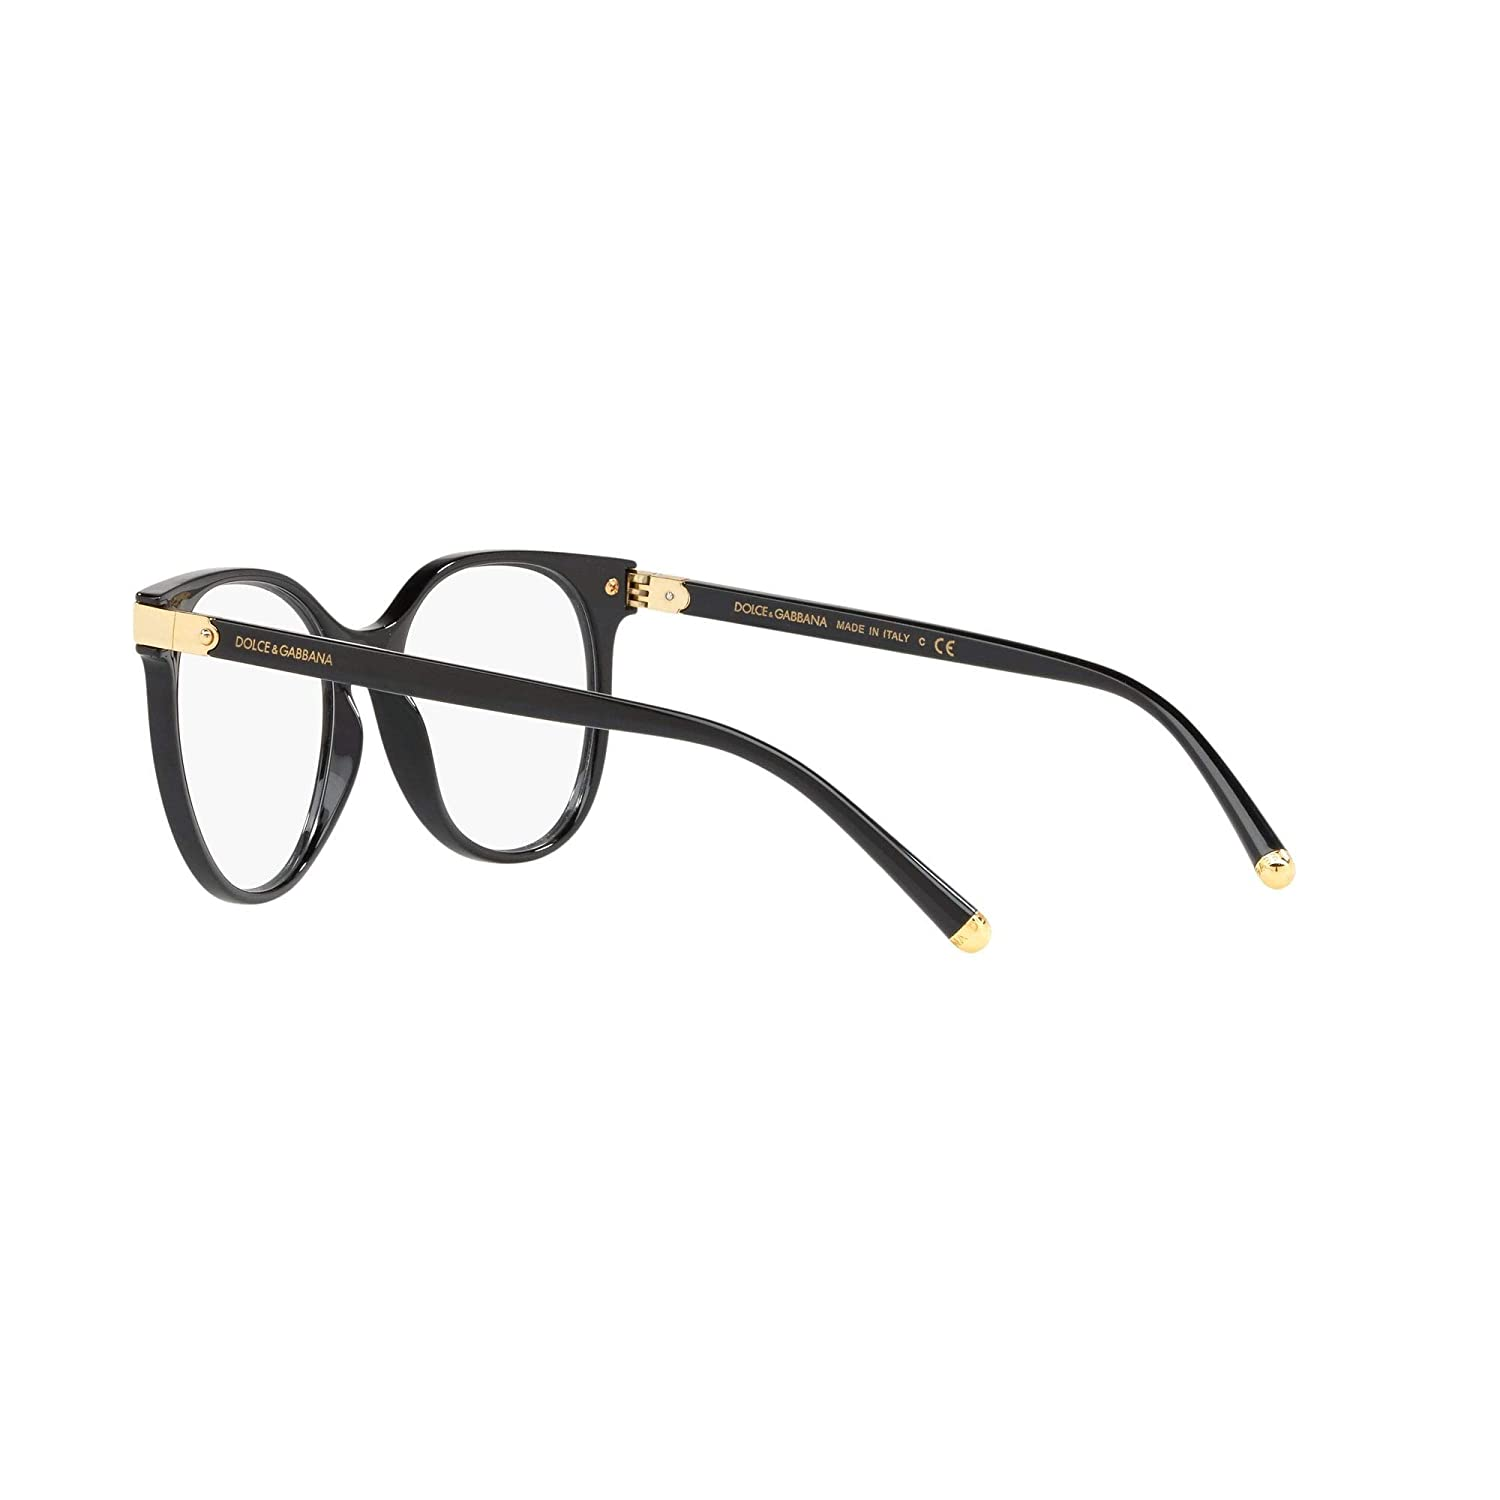 dc2dd3c42bc Dolce   Gabbana DG5032 Glasses in Black DG5032 501 53  Amazon.co.uk   Clothing